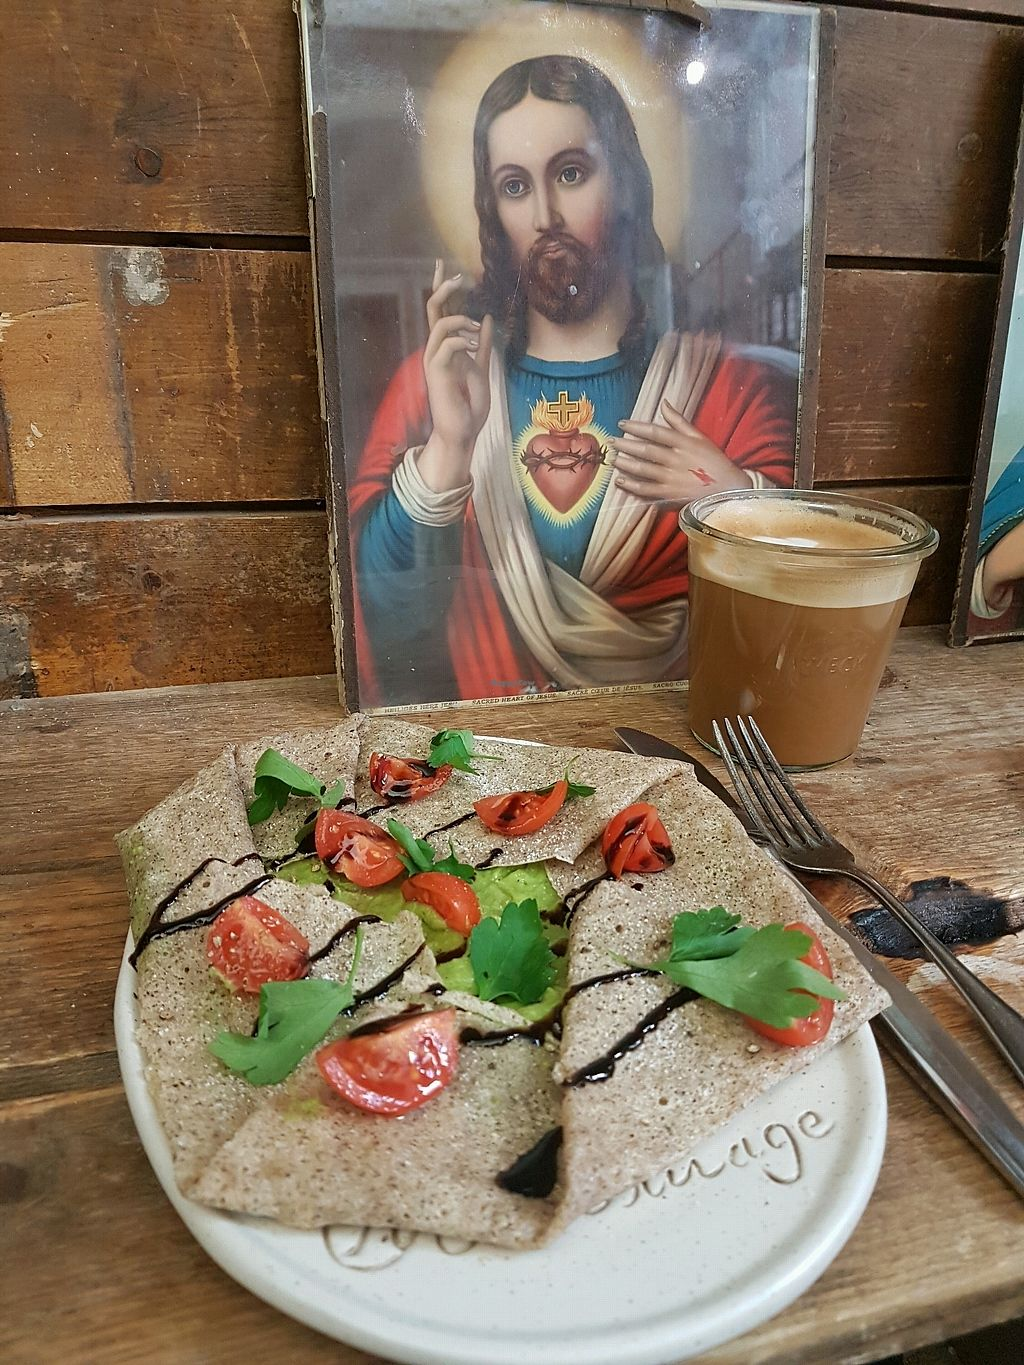 """Photo of Hommage  by <a href=""""/members/profile/vegan_healthy_woman"""">vegan_healthy_woman</a> <br/>Galette mit Avocado und Tomate <br/> March 20, 2018  - <a href='/contact/abuse/image/77129/373197'>Report</a>"""